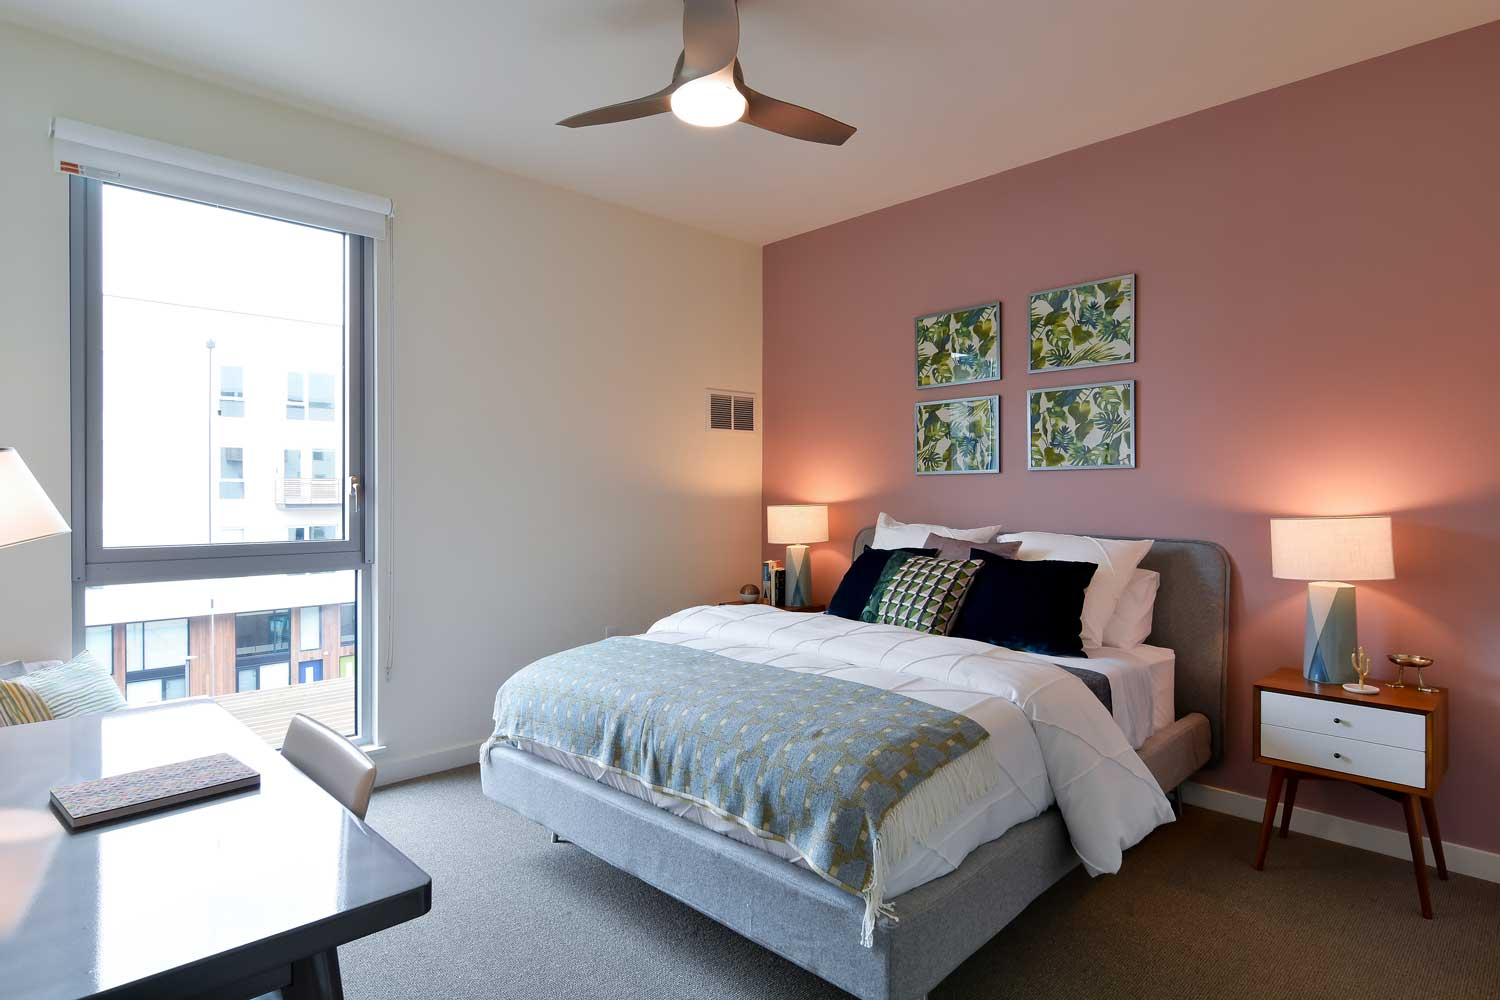 Apartments in Union City-The Union Flats Spacious Bedroom with Floor to Ceiling Window and Ceiling Fan